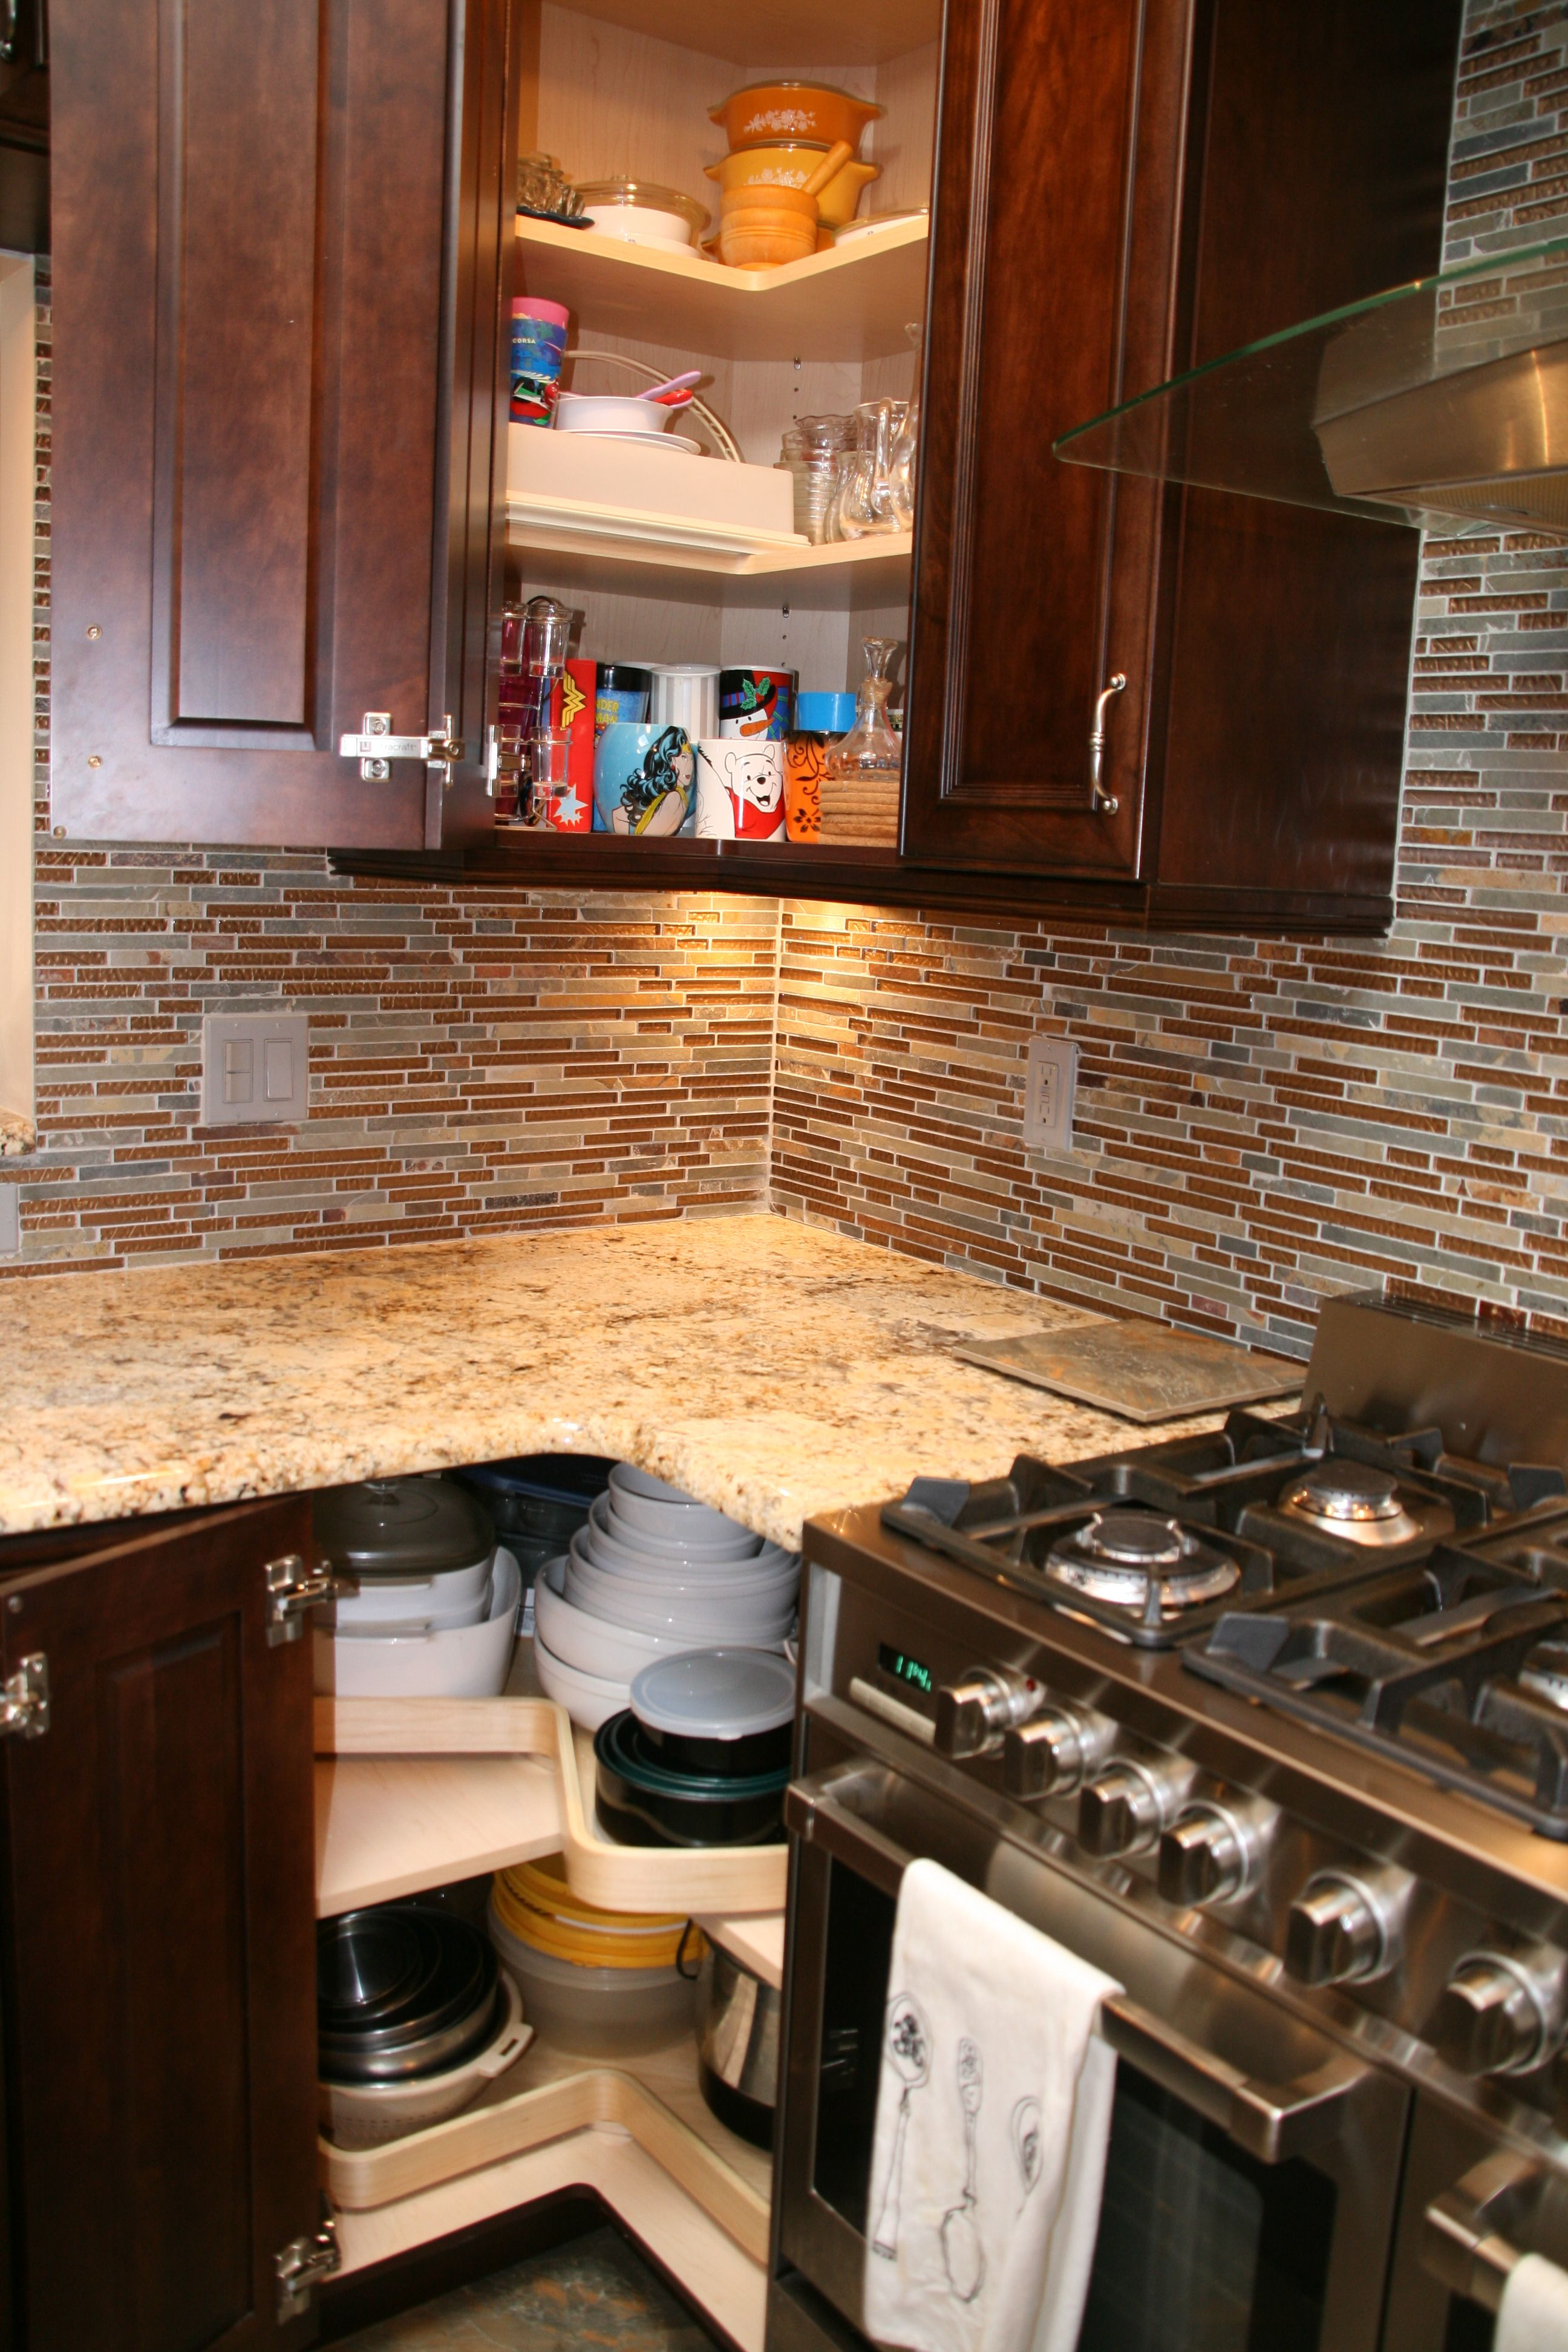 Effective Use Of Corner Spaces With Specialty Doors And Turntables Residential Remodel Corner Space Kitchen Cabinets